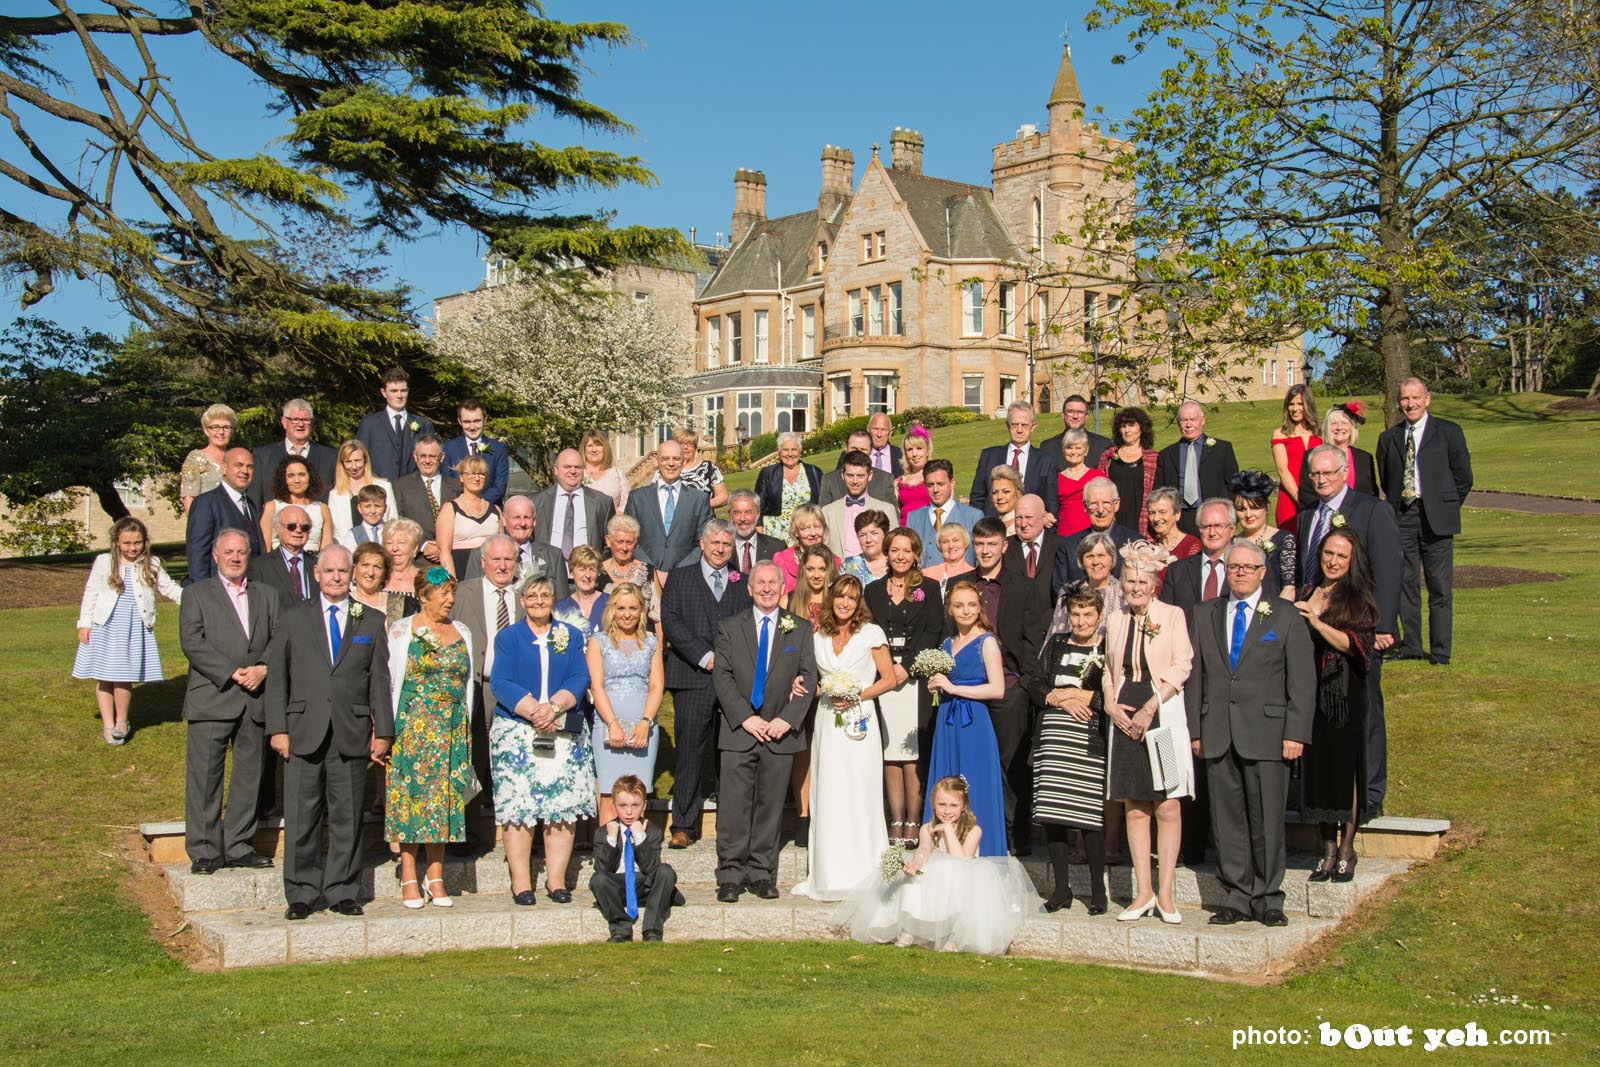 Michael and Annette's wedding photographed by Bout Yeh wedding photographers and video services Belfast and Northern Ireland. Photo 6107